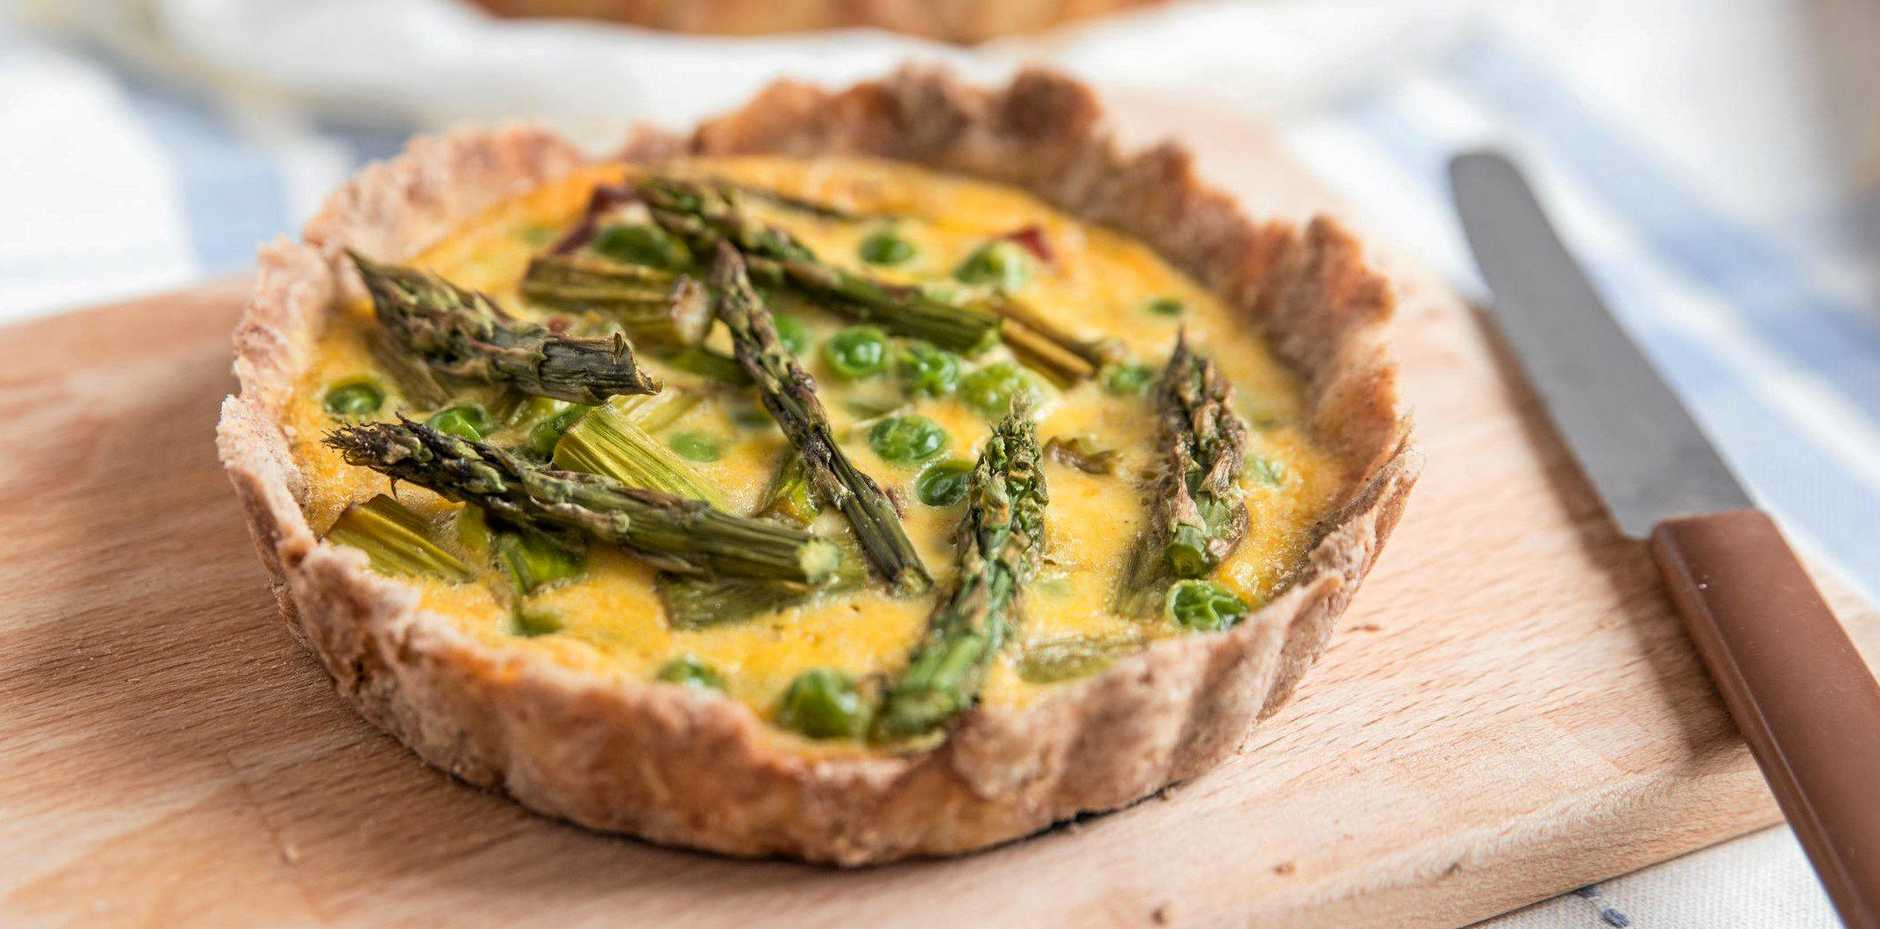 These delicious little quiches can be made with any spring vegetables you like.